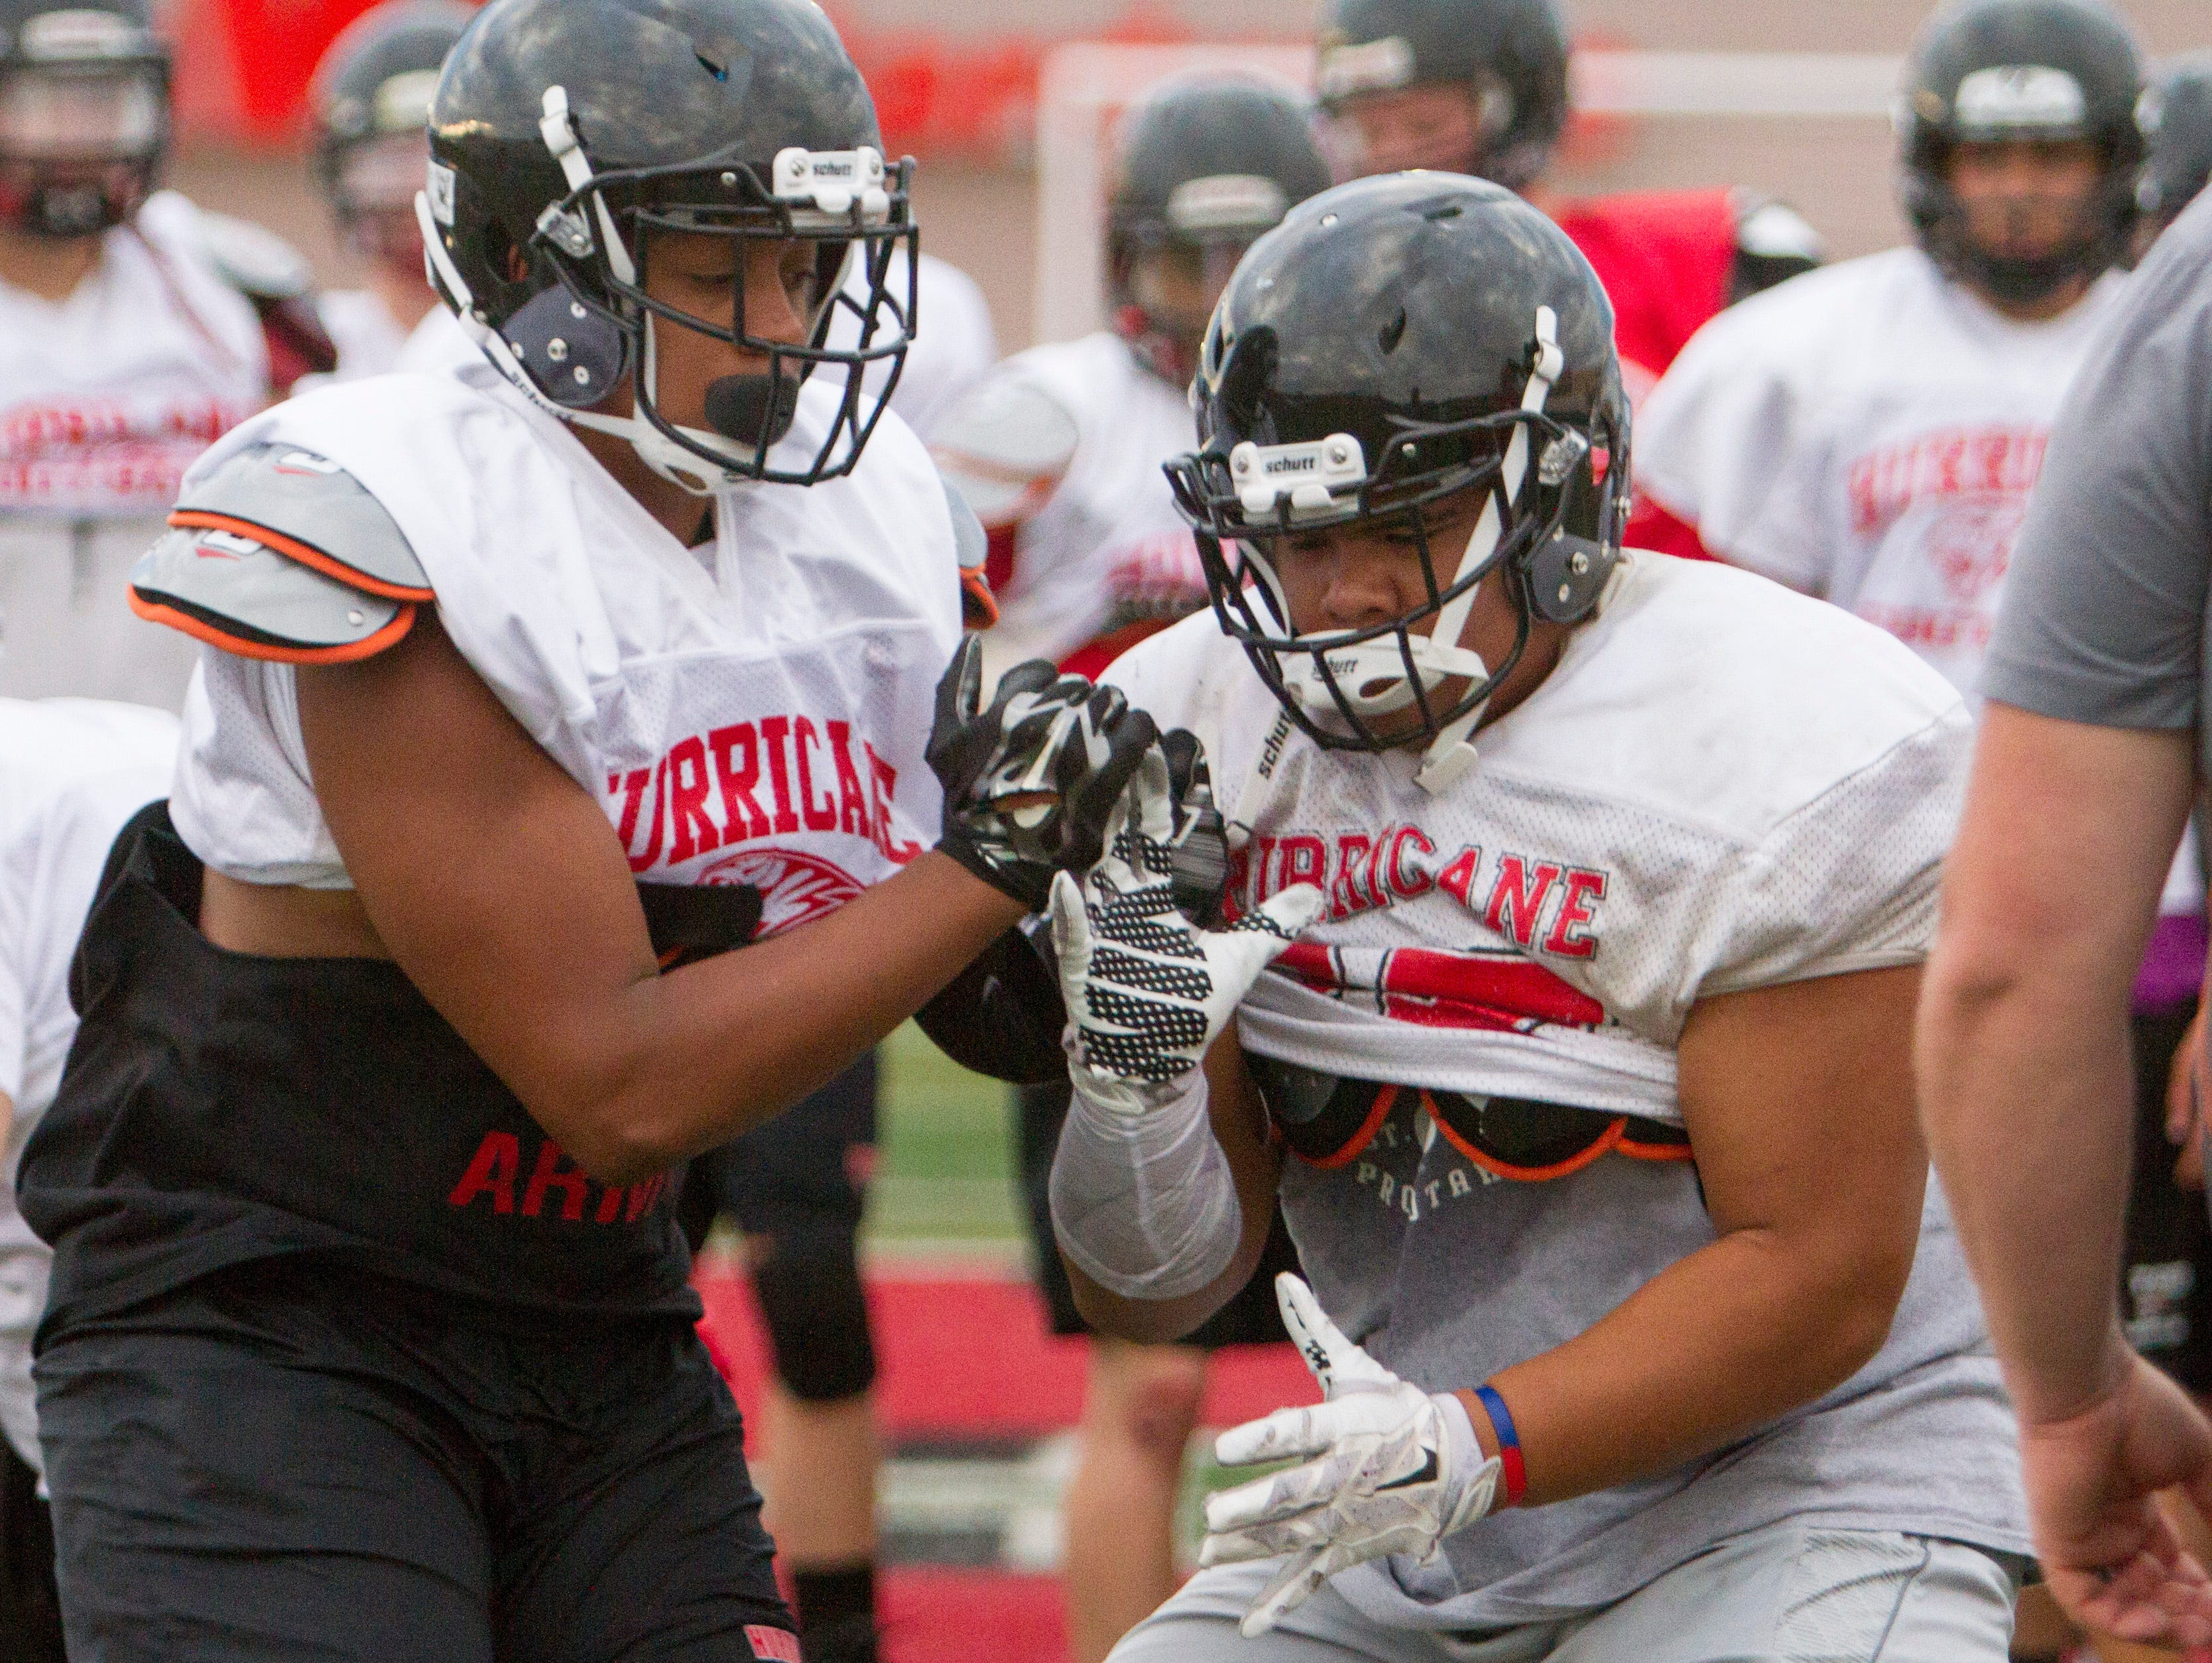 The Hurricane High School football team practices for their upcoming season Thursday, August 4, 2016. The Tigers open the season at home against Skyline on Friday at 7 p.m.